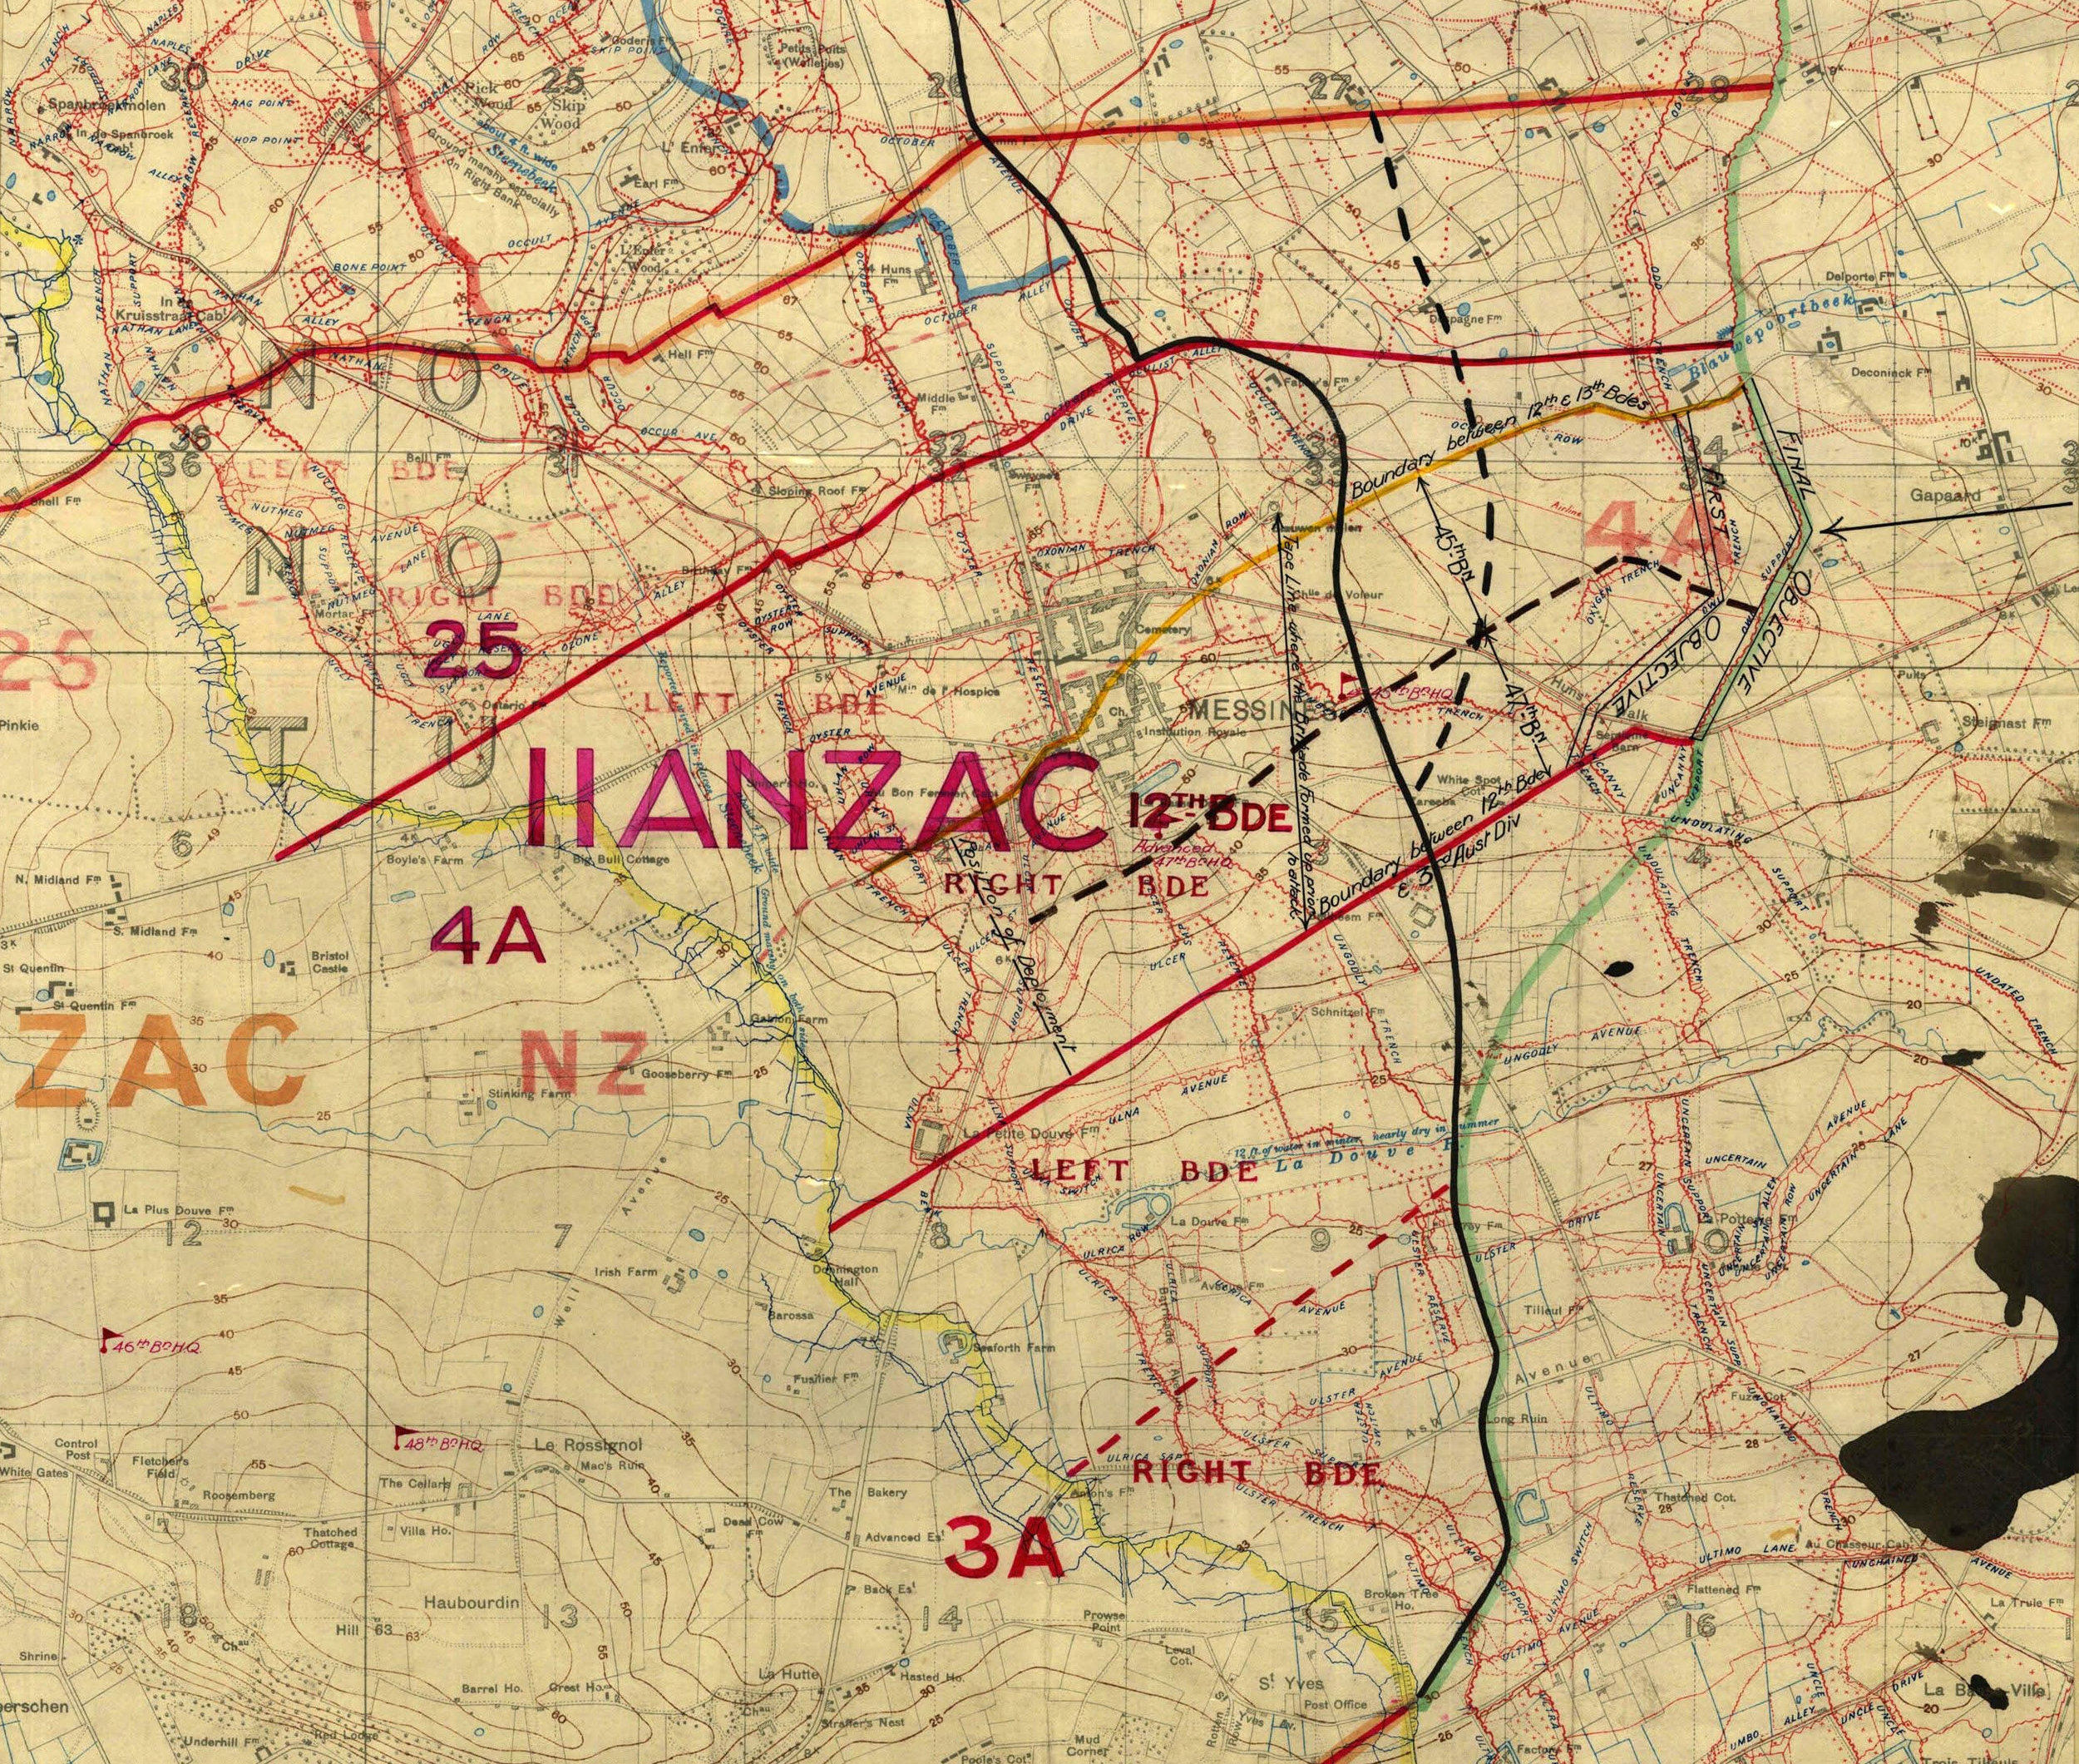 Battle plan for the 2nd ANZAC Corps. The town of Messines can be seen above '12th Bde'.